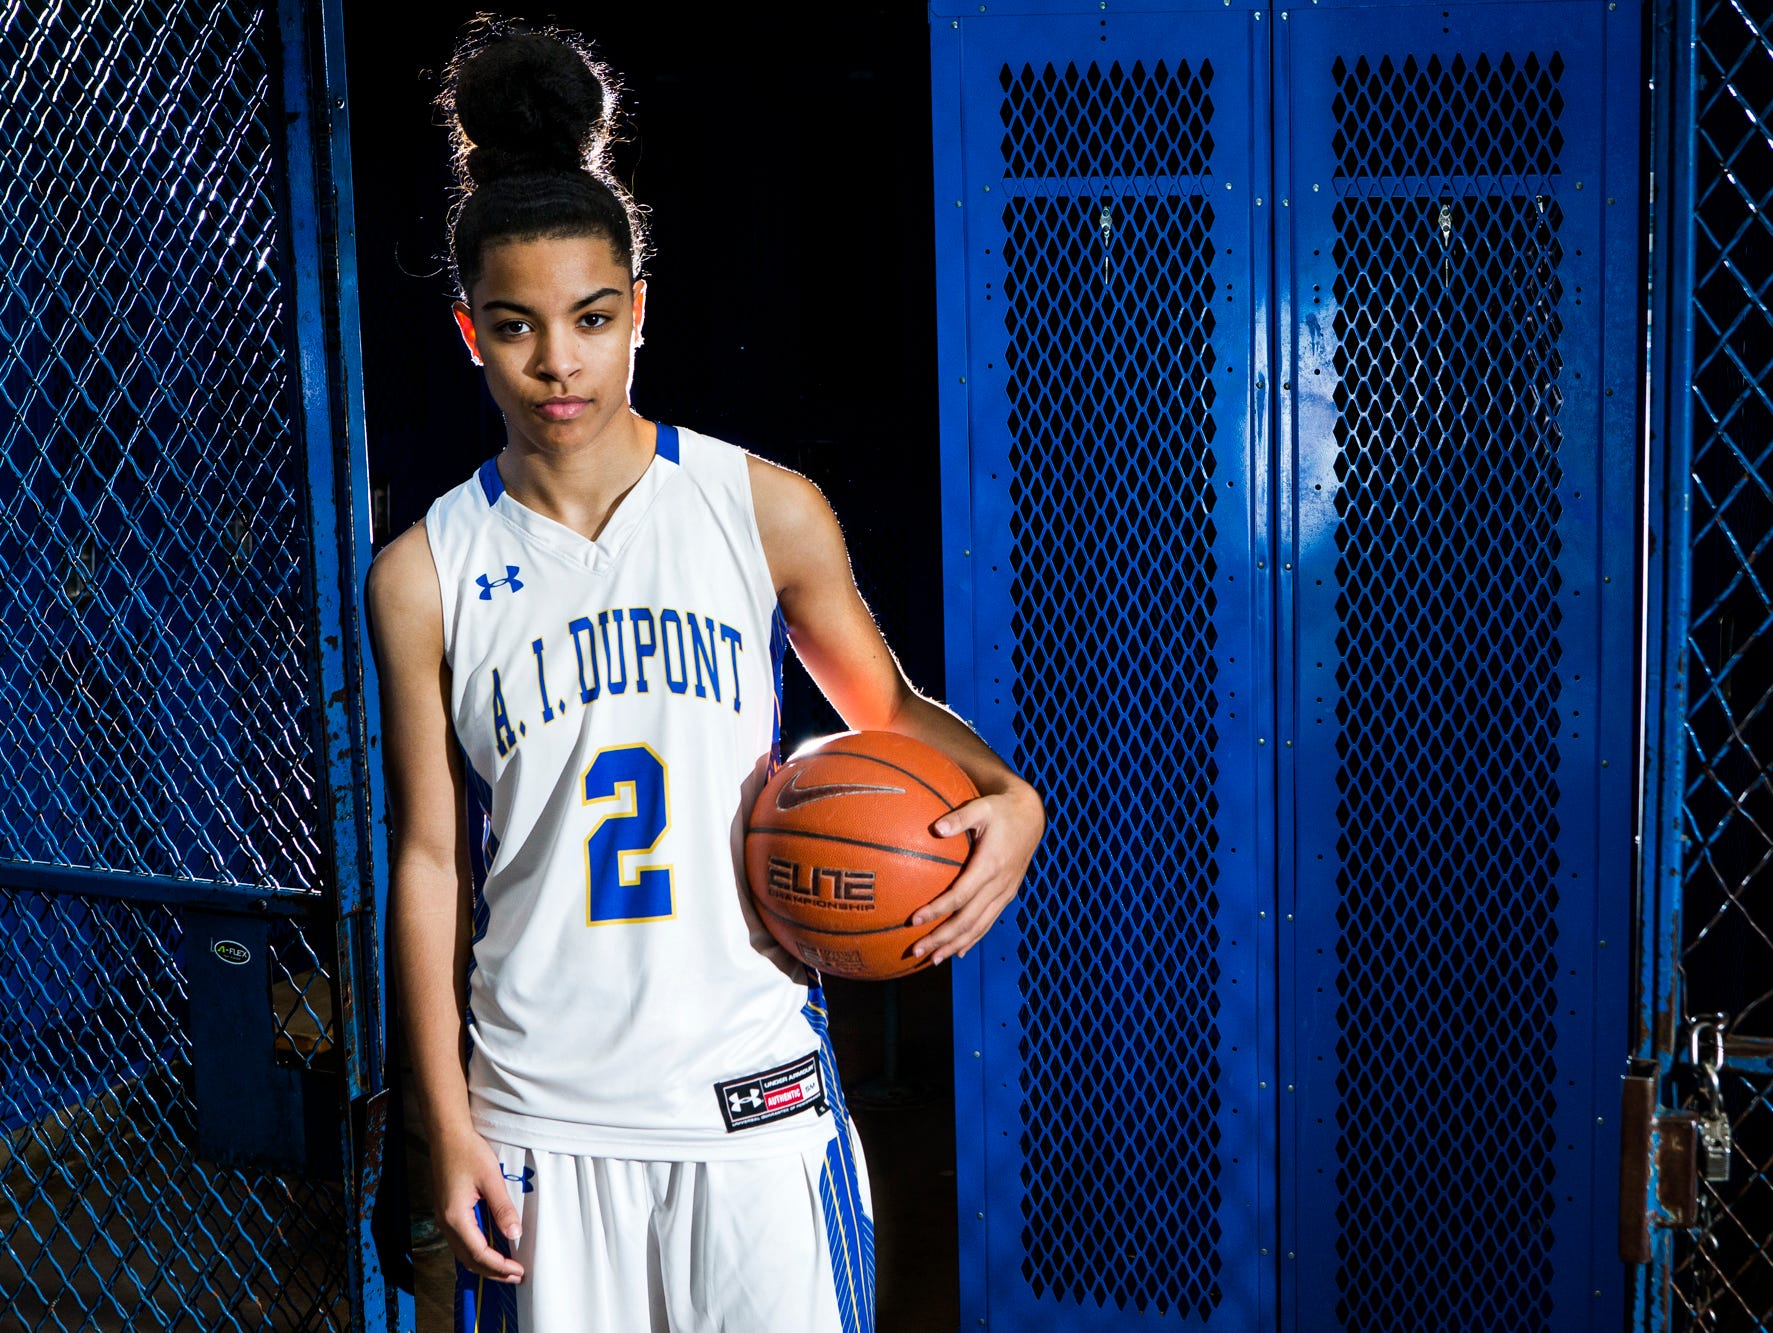 A.I. duPont's Lauryn Griffin poses for a portrait int the locker room at A.I. duPont High School in Greenville on Monday afternoon.